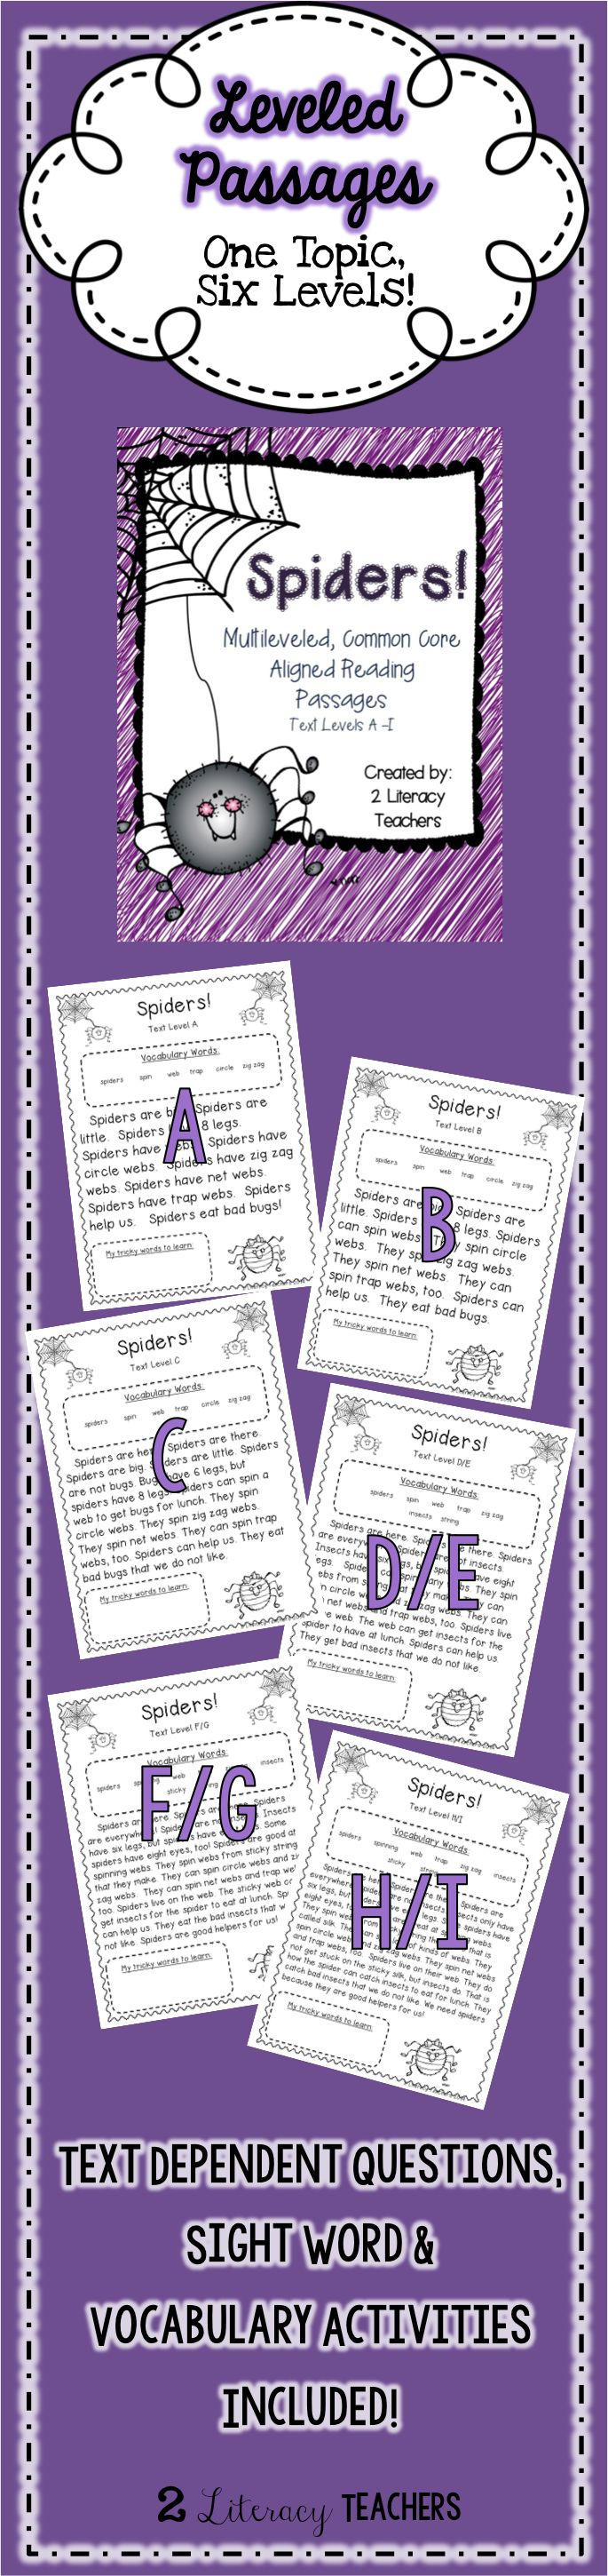 Spiders! Leveled Passages. One topic, six levels. Perfect for differentiation. Can be used for small group or whole group. Allows each student to access content at their level. Perfect to supplement your spider themes!!